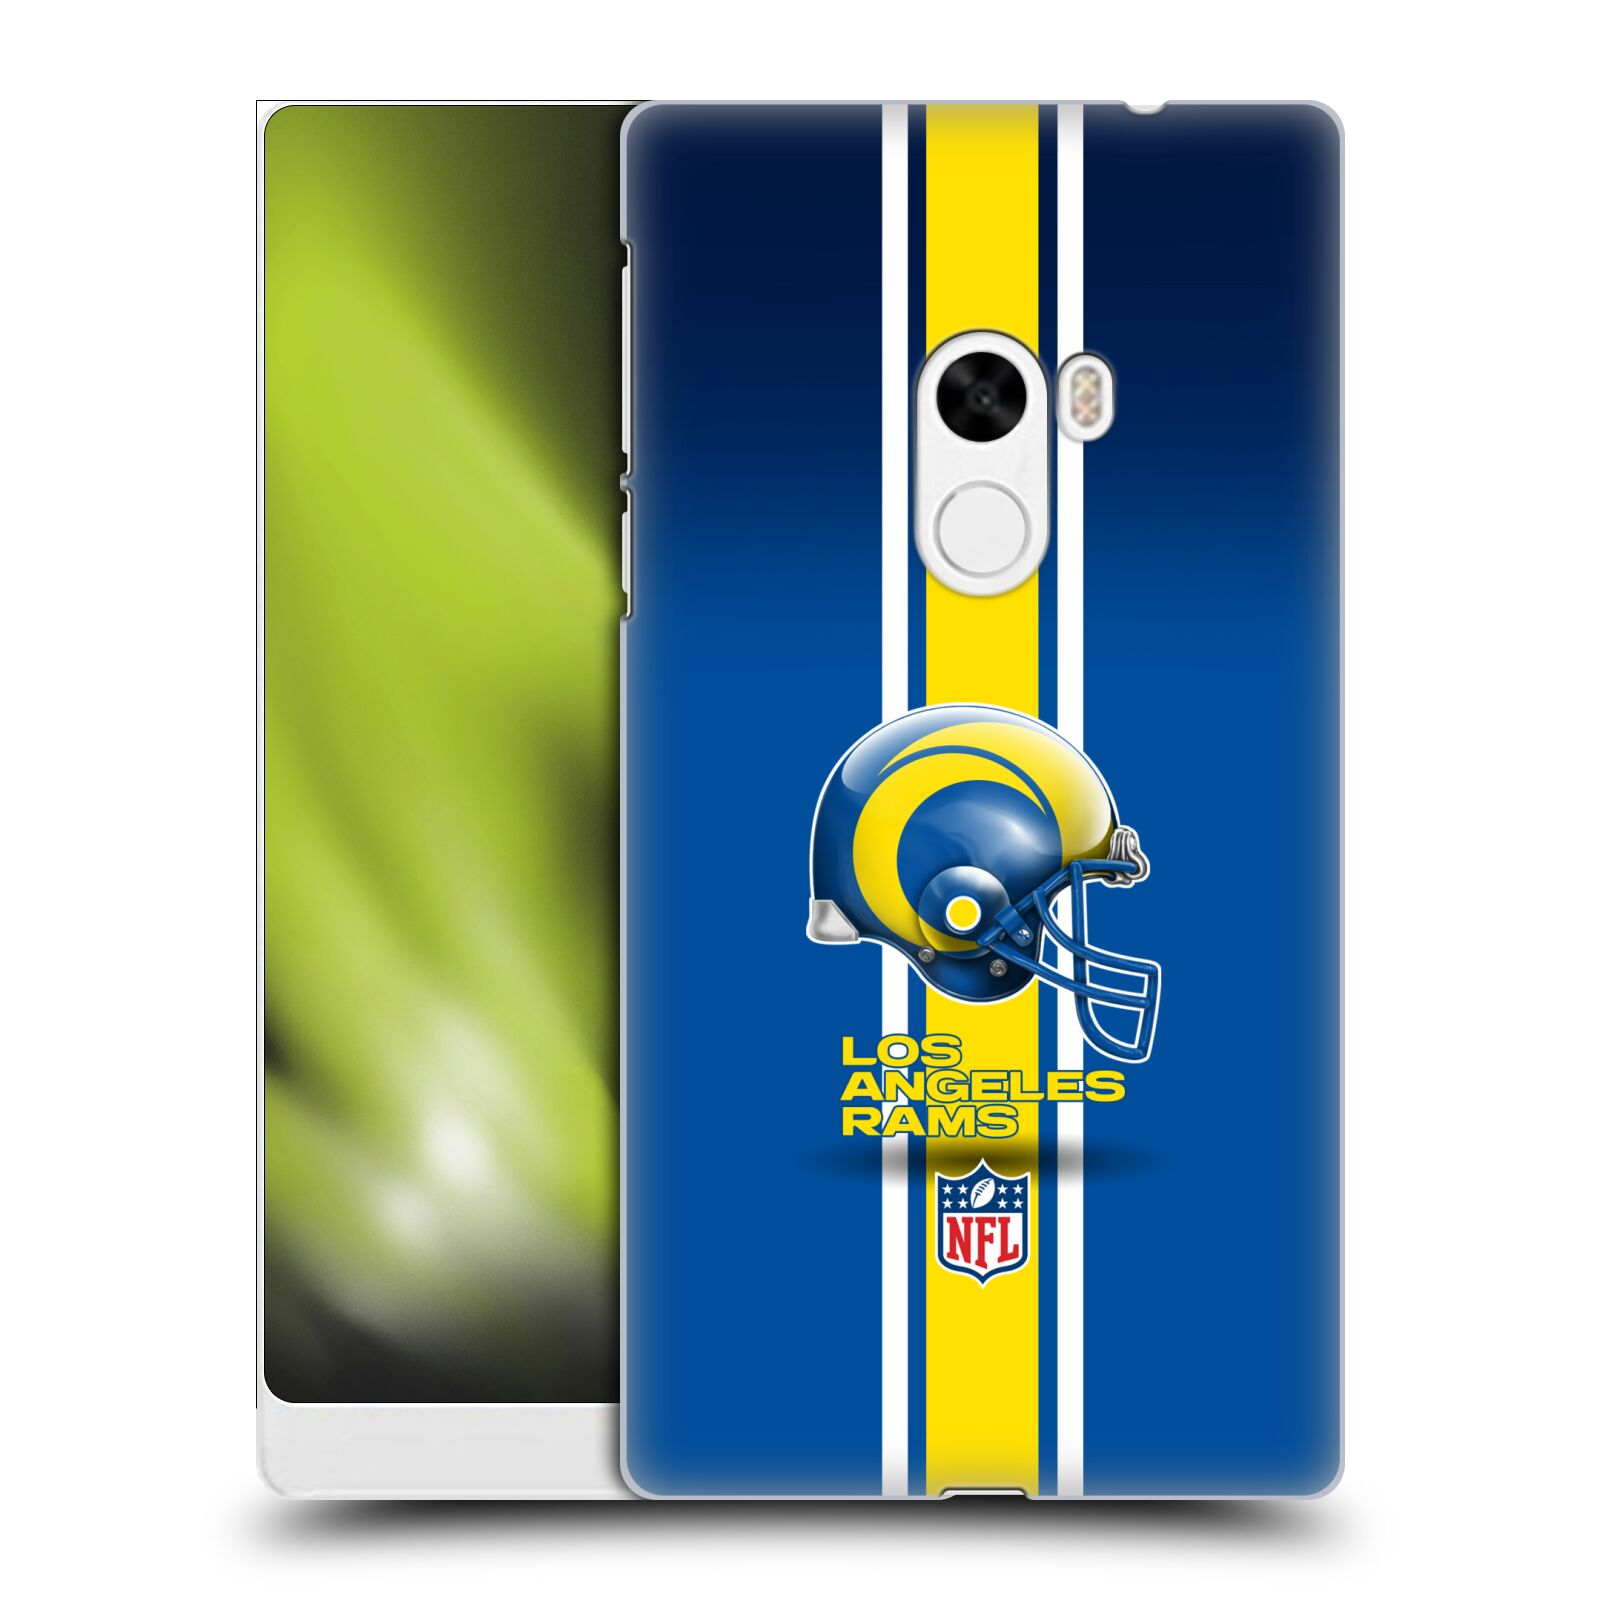 OFFIZIELLE-NFL-LOS-ANGELES-RAMS-LOGO-RUCKSEITE-HULLE-FUR-XIAOMI-HANDYS